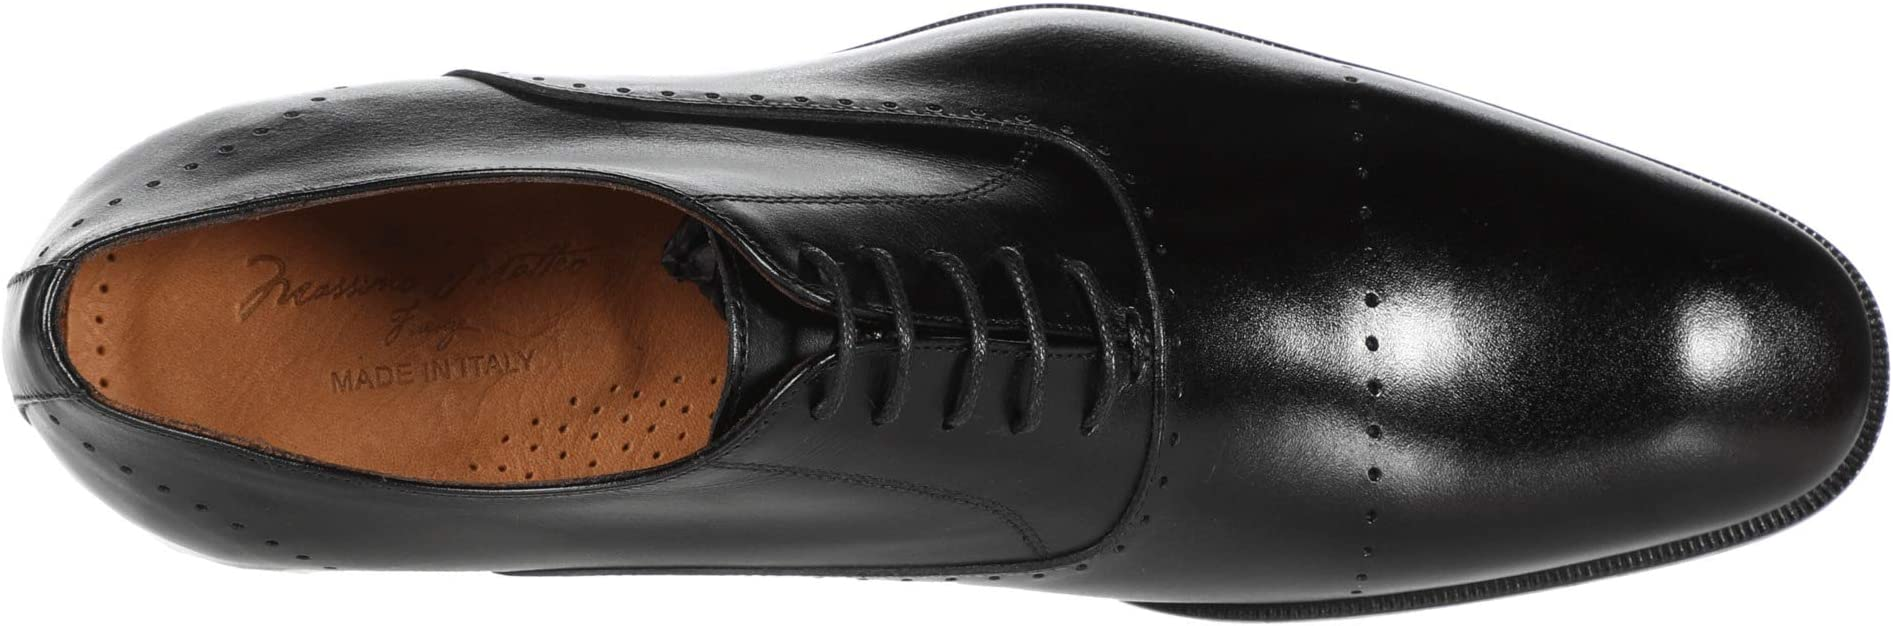 Massimo Matteo Perf Bal Cap Toe | Men's shoes | 2020 Newest